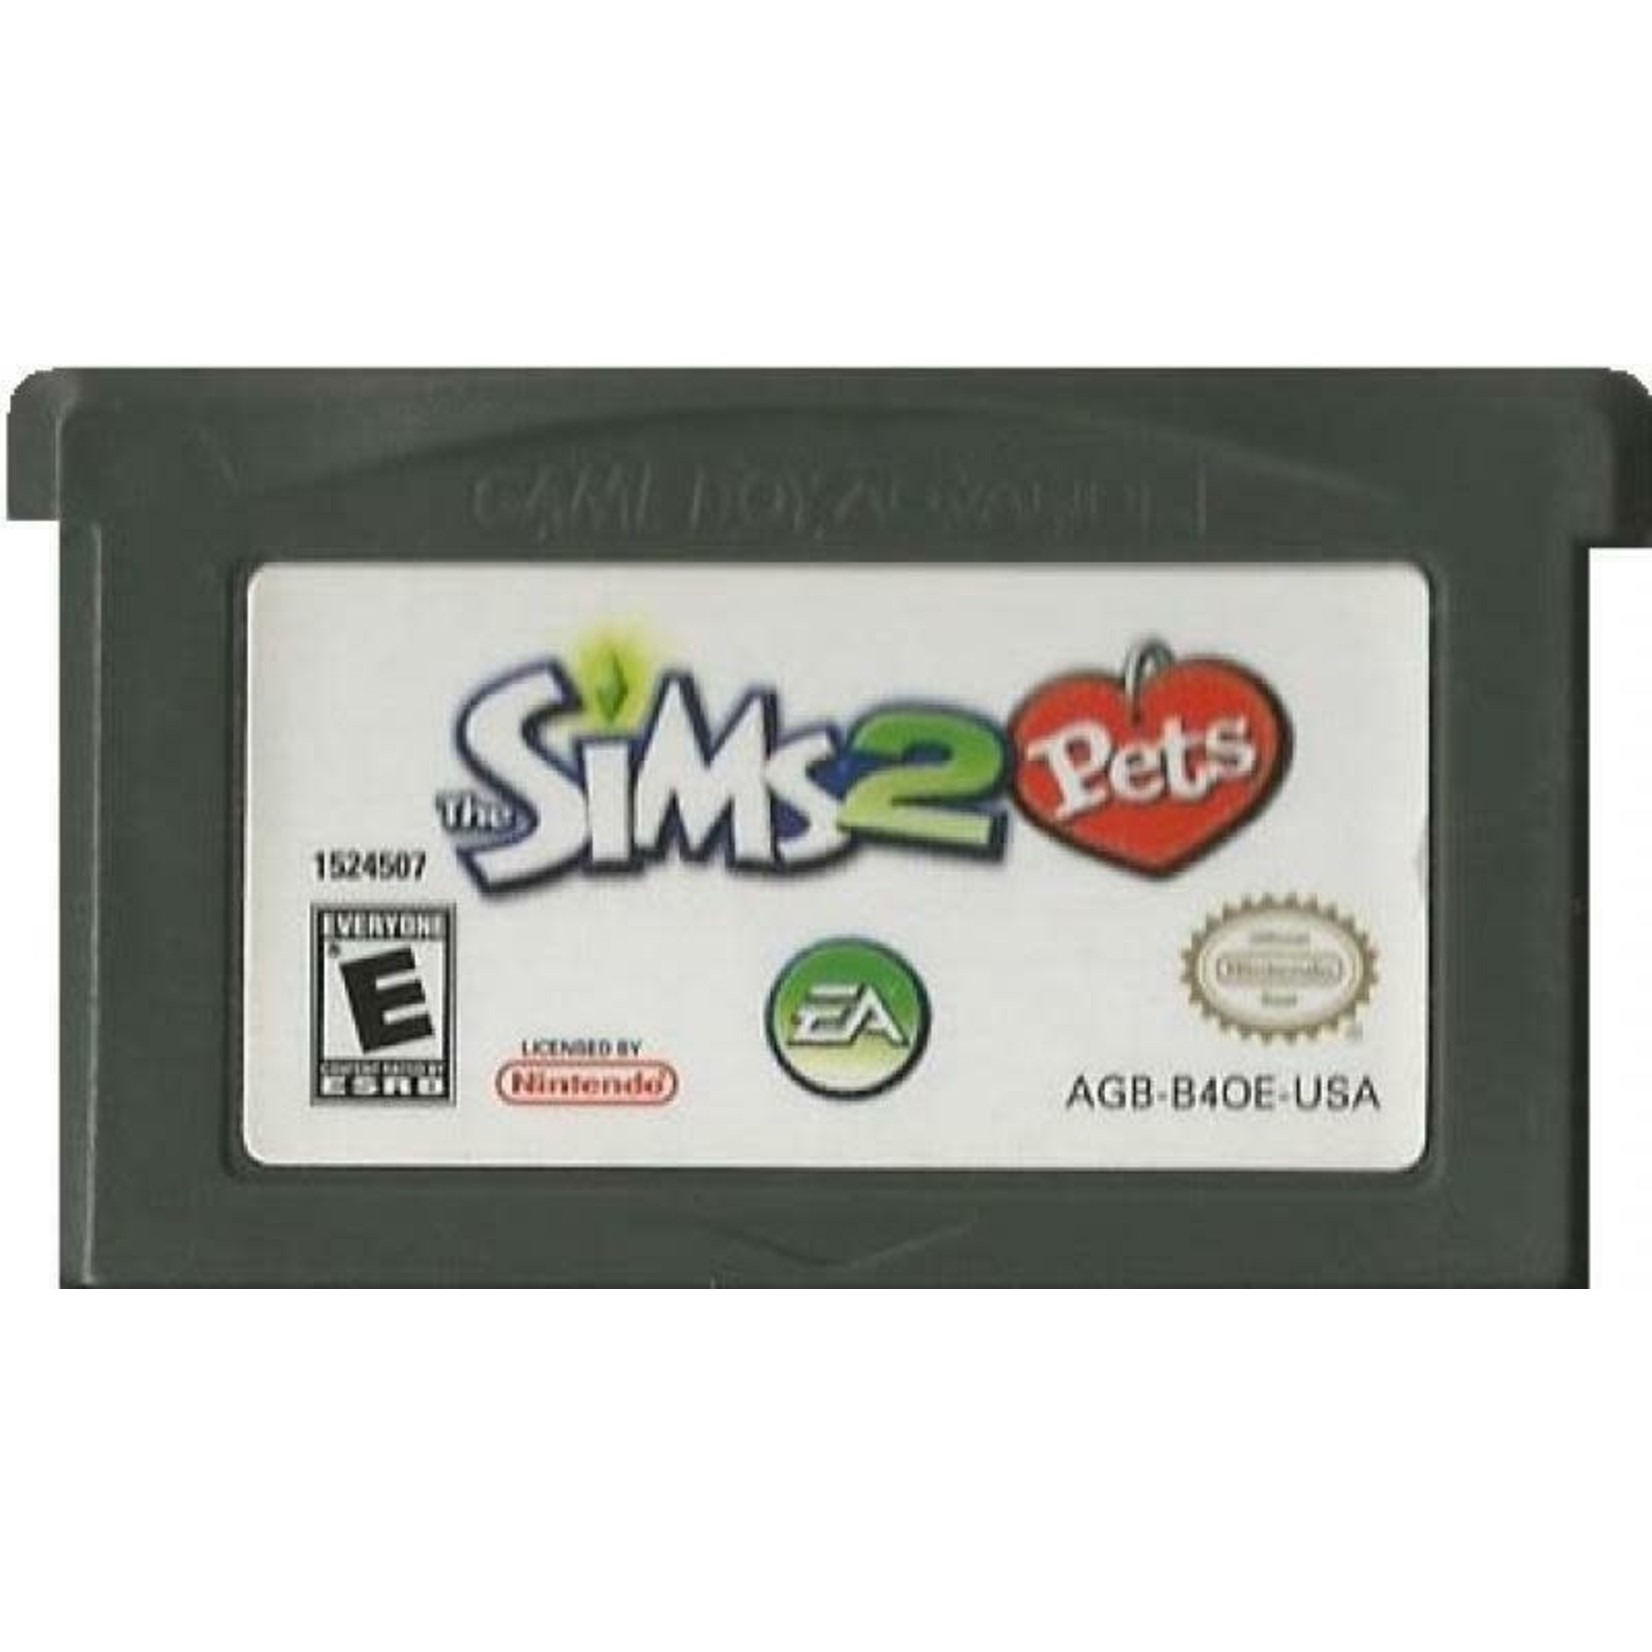 GBAU-The Sims 2 Pets (Cartridge Only)